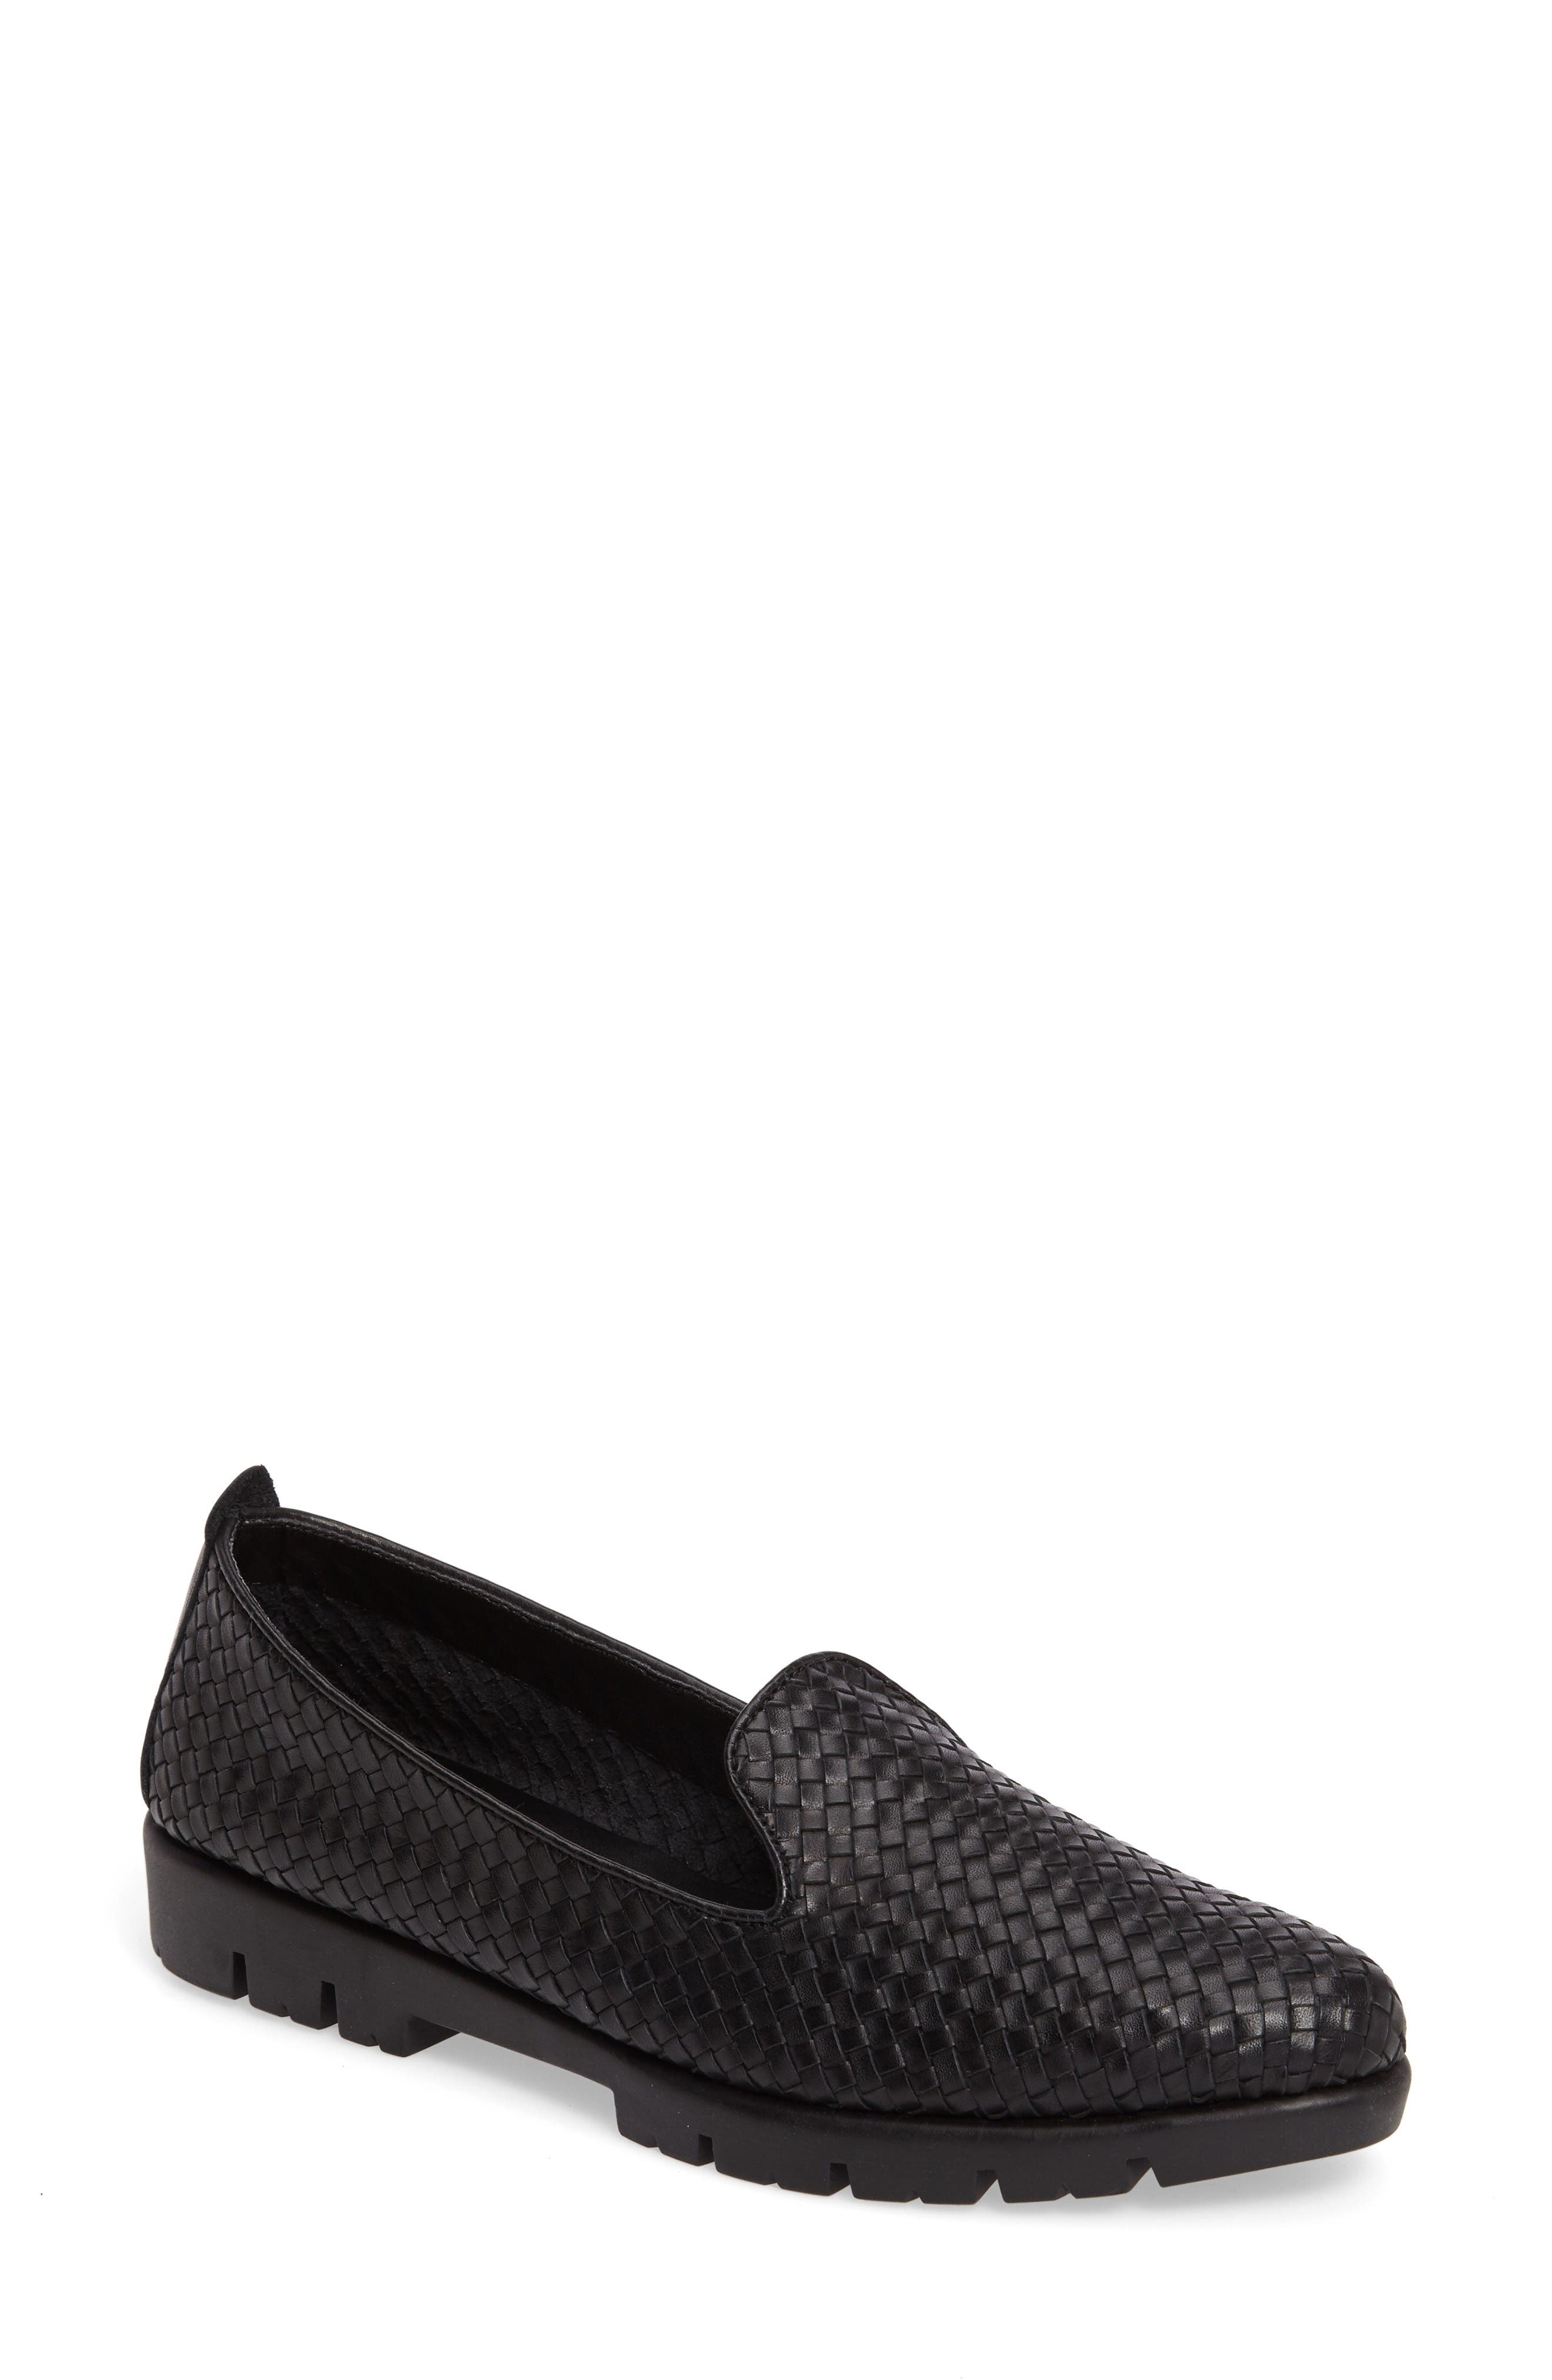 Smokin Hot Too Platform Loafer,                             Main thumbnail 1, color,                             Black Elba Intreccio Leather